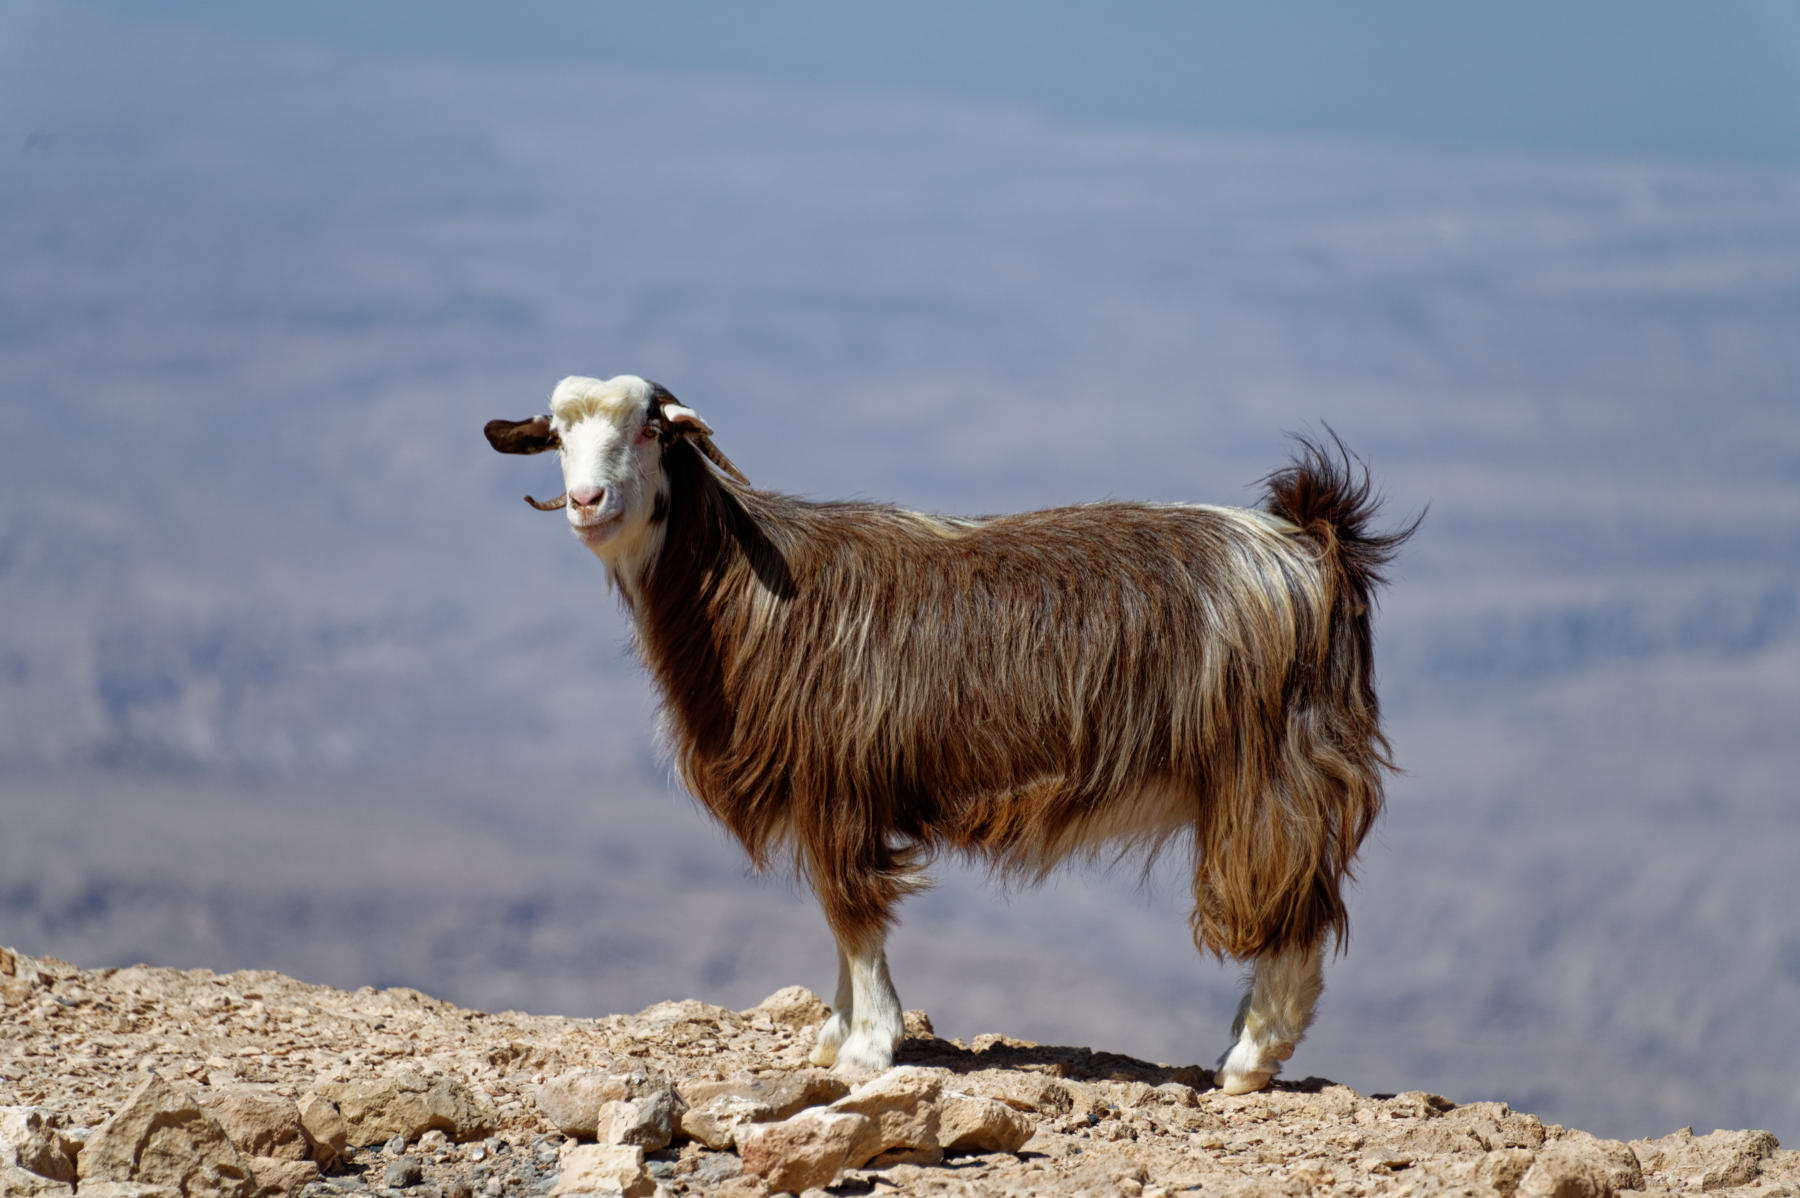 A goat in the Hajar Mountains, Oman